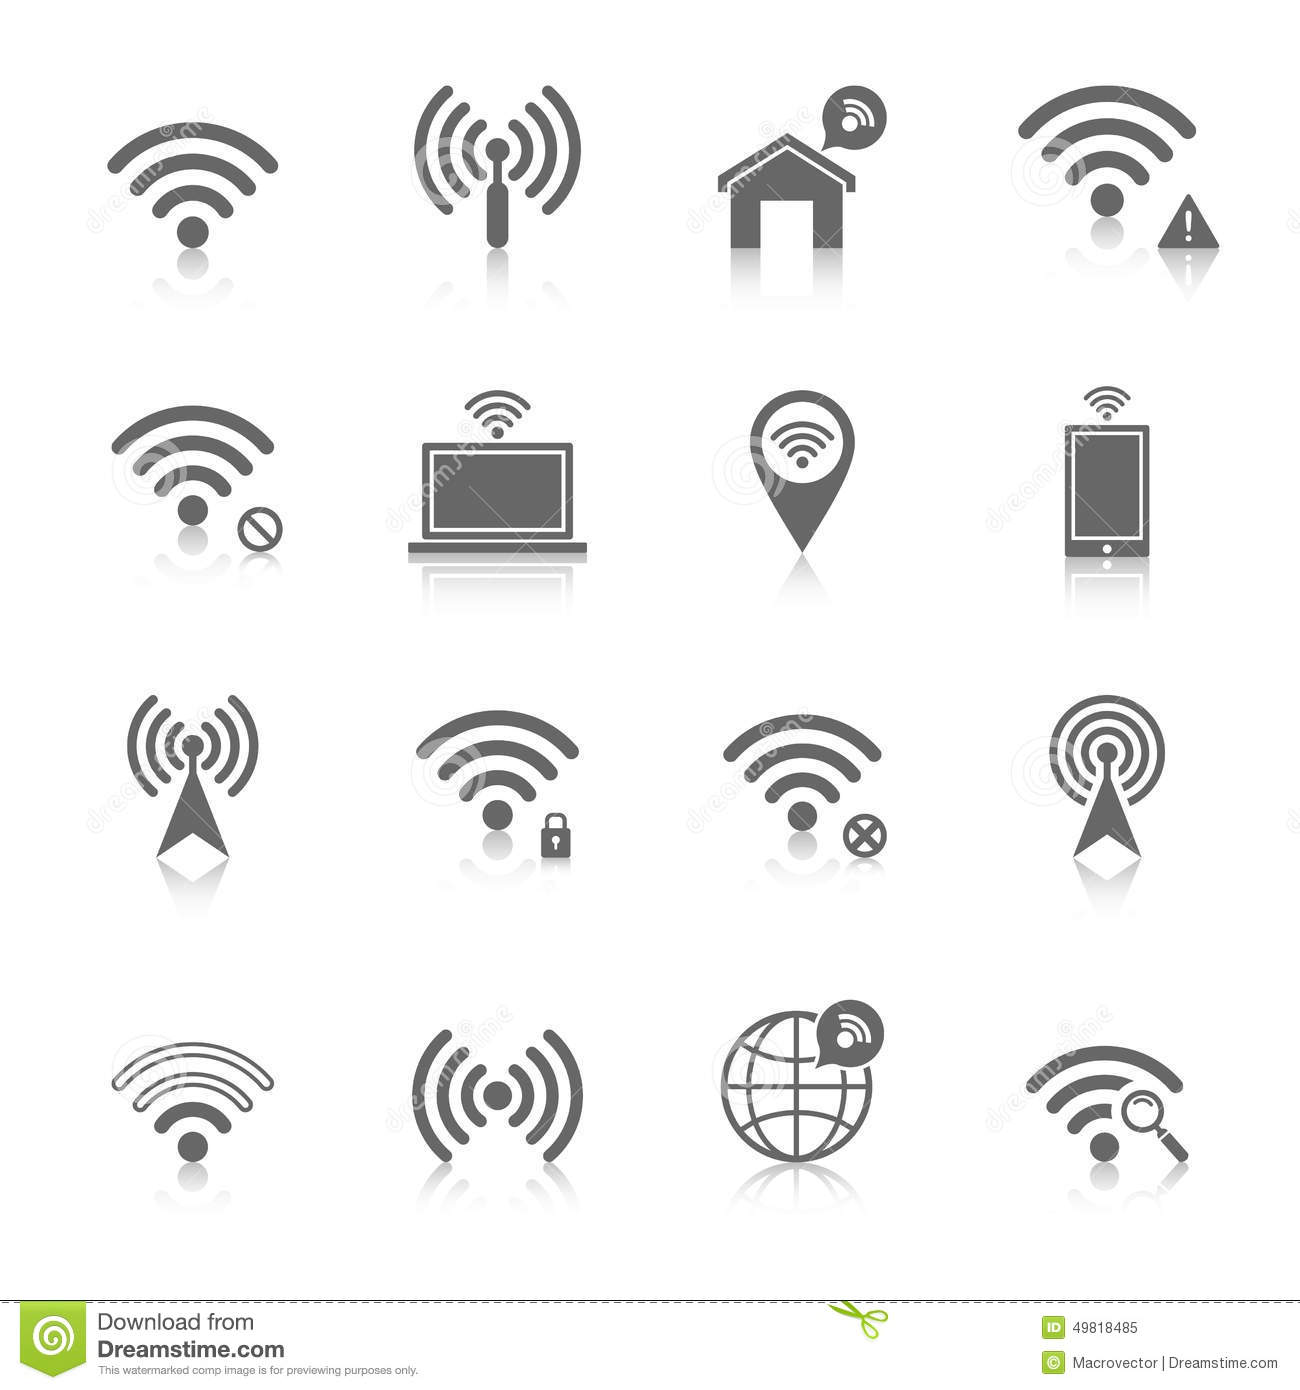 Wireless Access Point Symbol